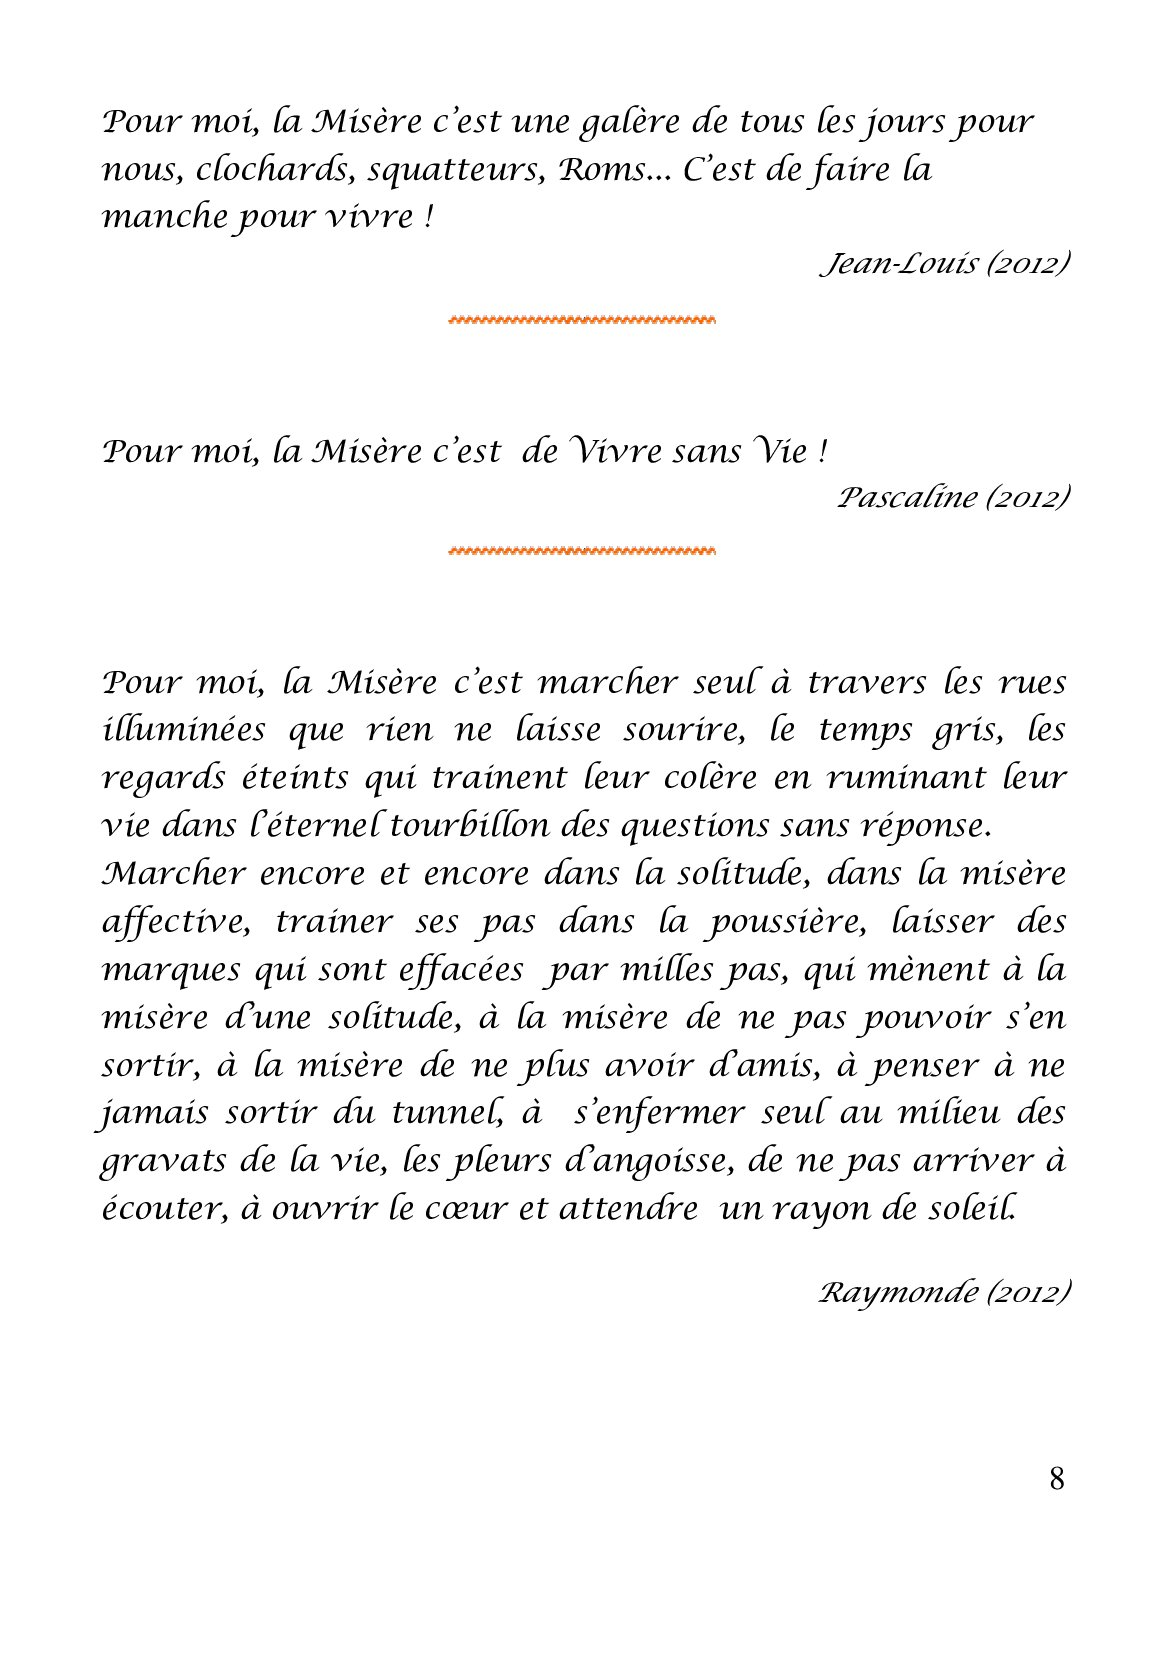 recueil_version_blog_008.jpg